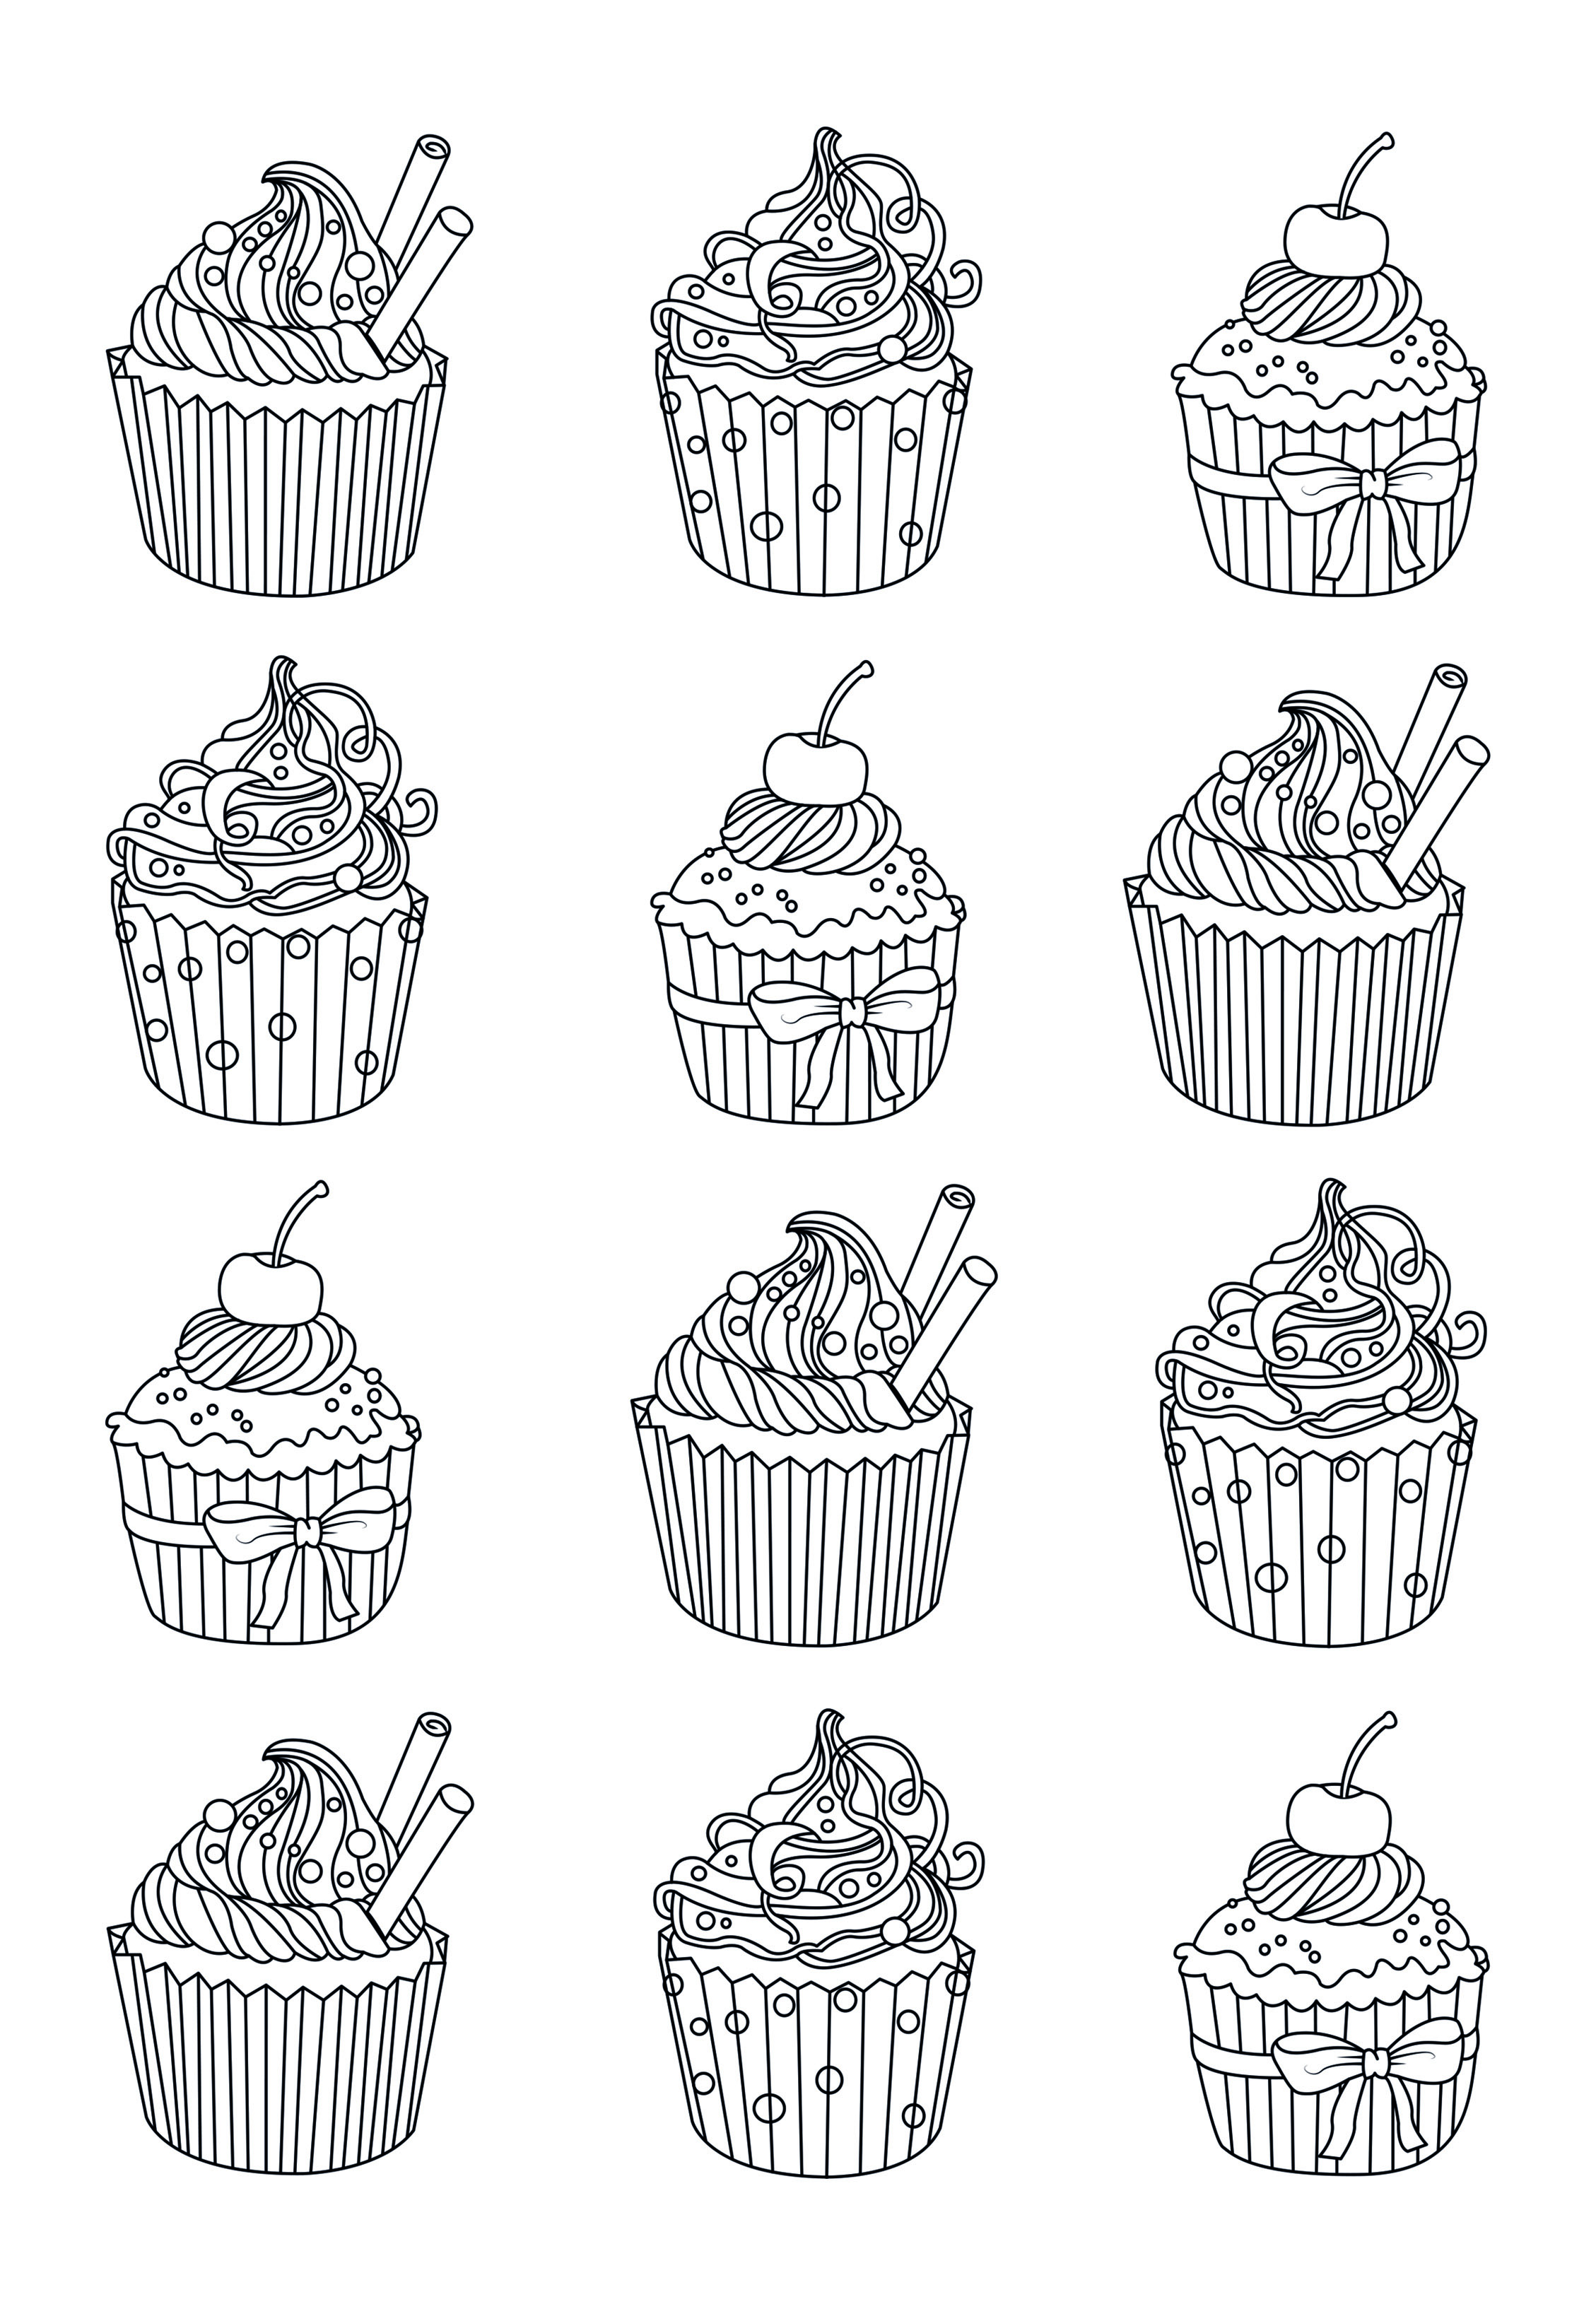 Cupcakes easy Celine - Cupcakes Adult Coloring Pages